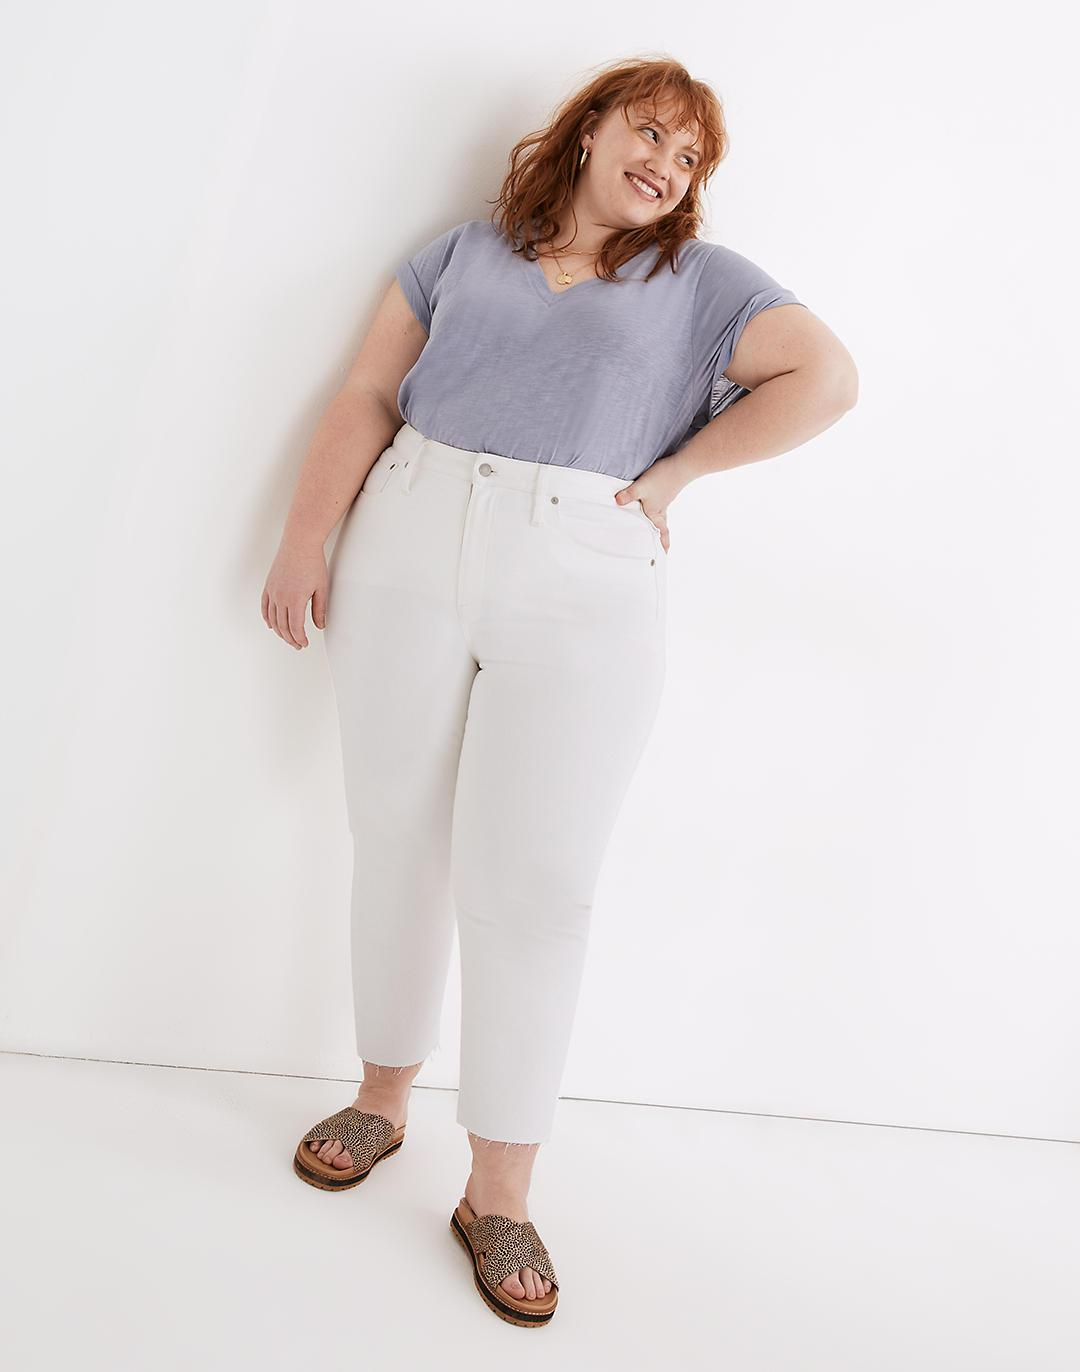 The Plus Perfect Vintage Jean in Tile White